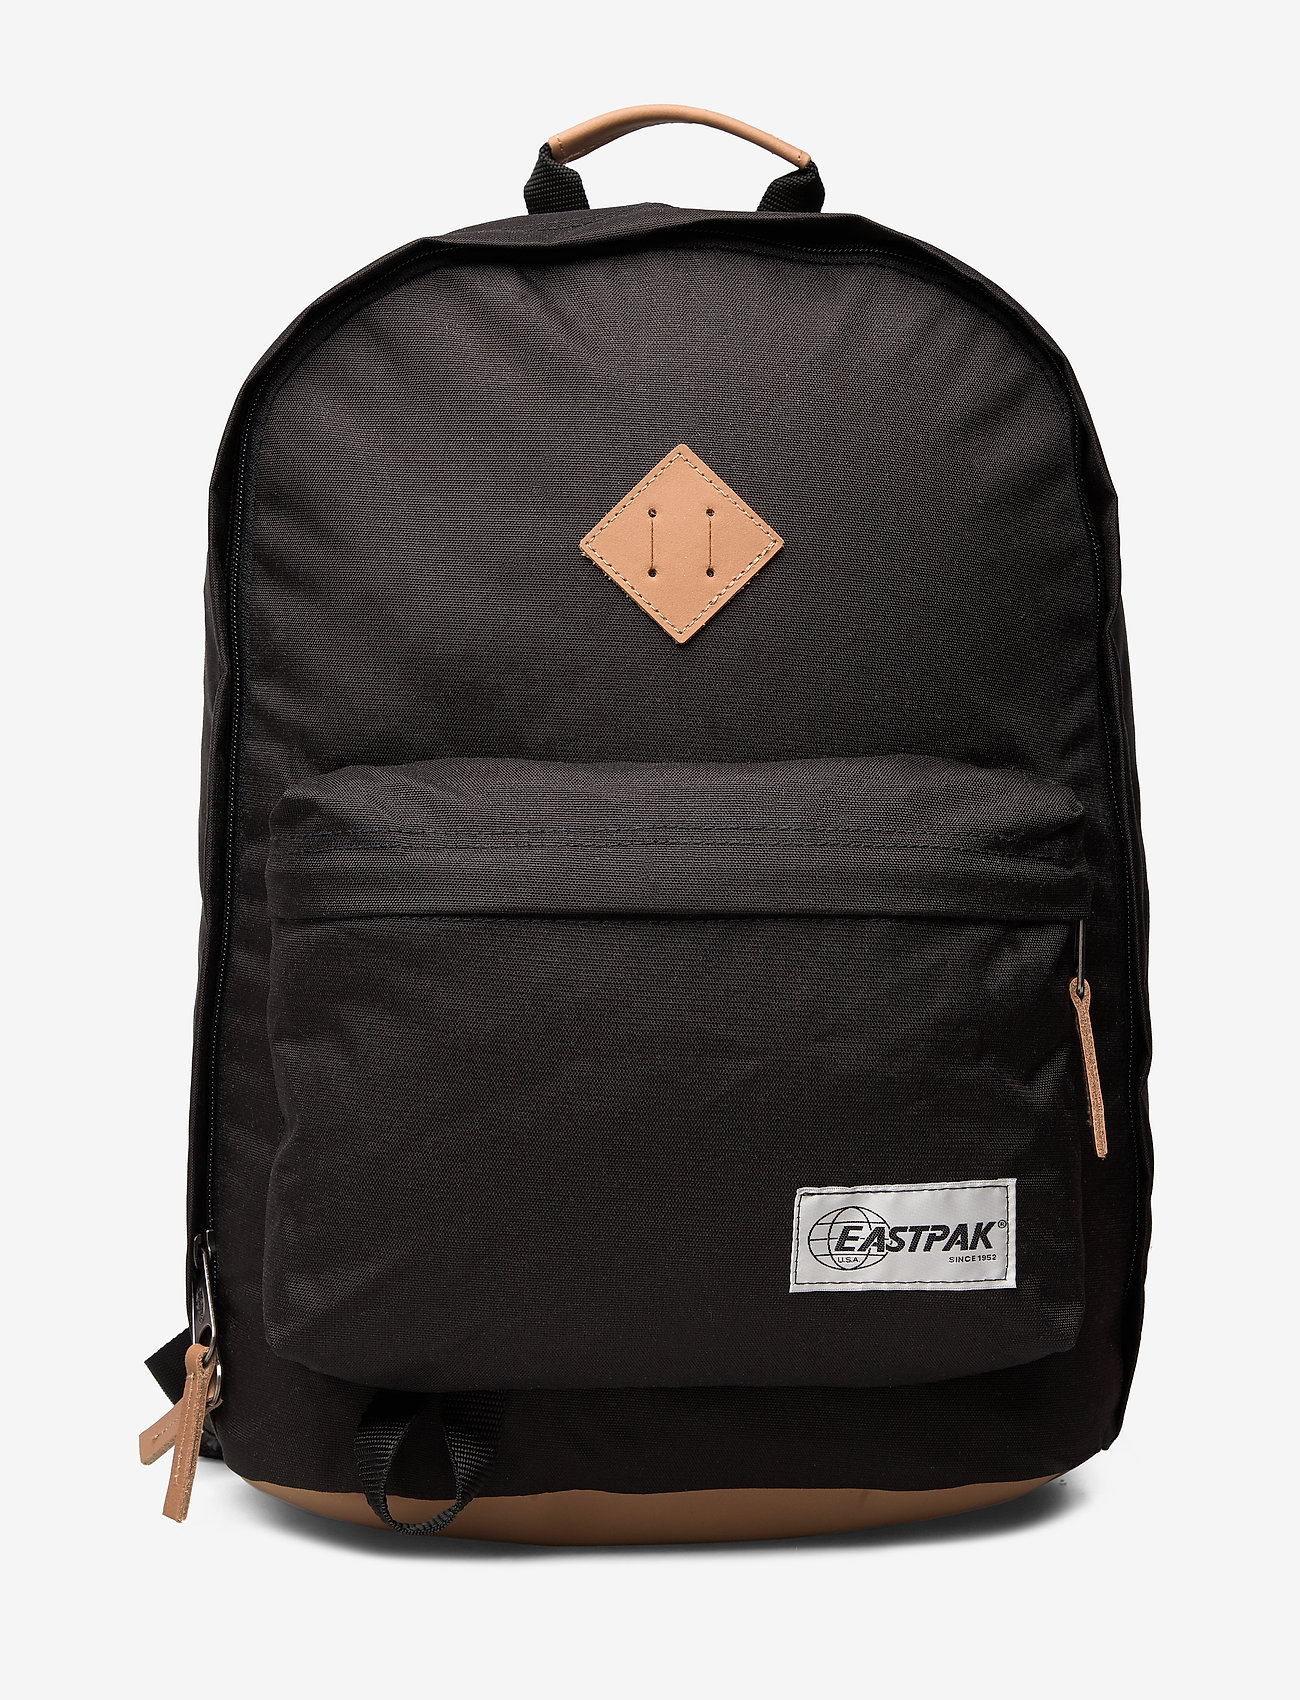 Eastpak - OUT OF OFFICE - ryggsäckar - into black - 0